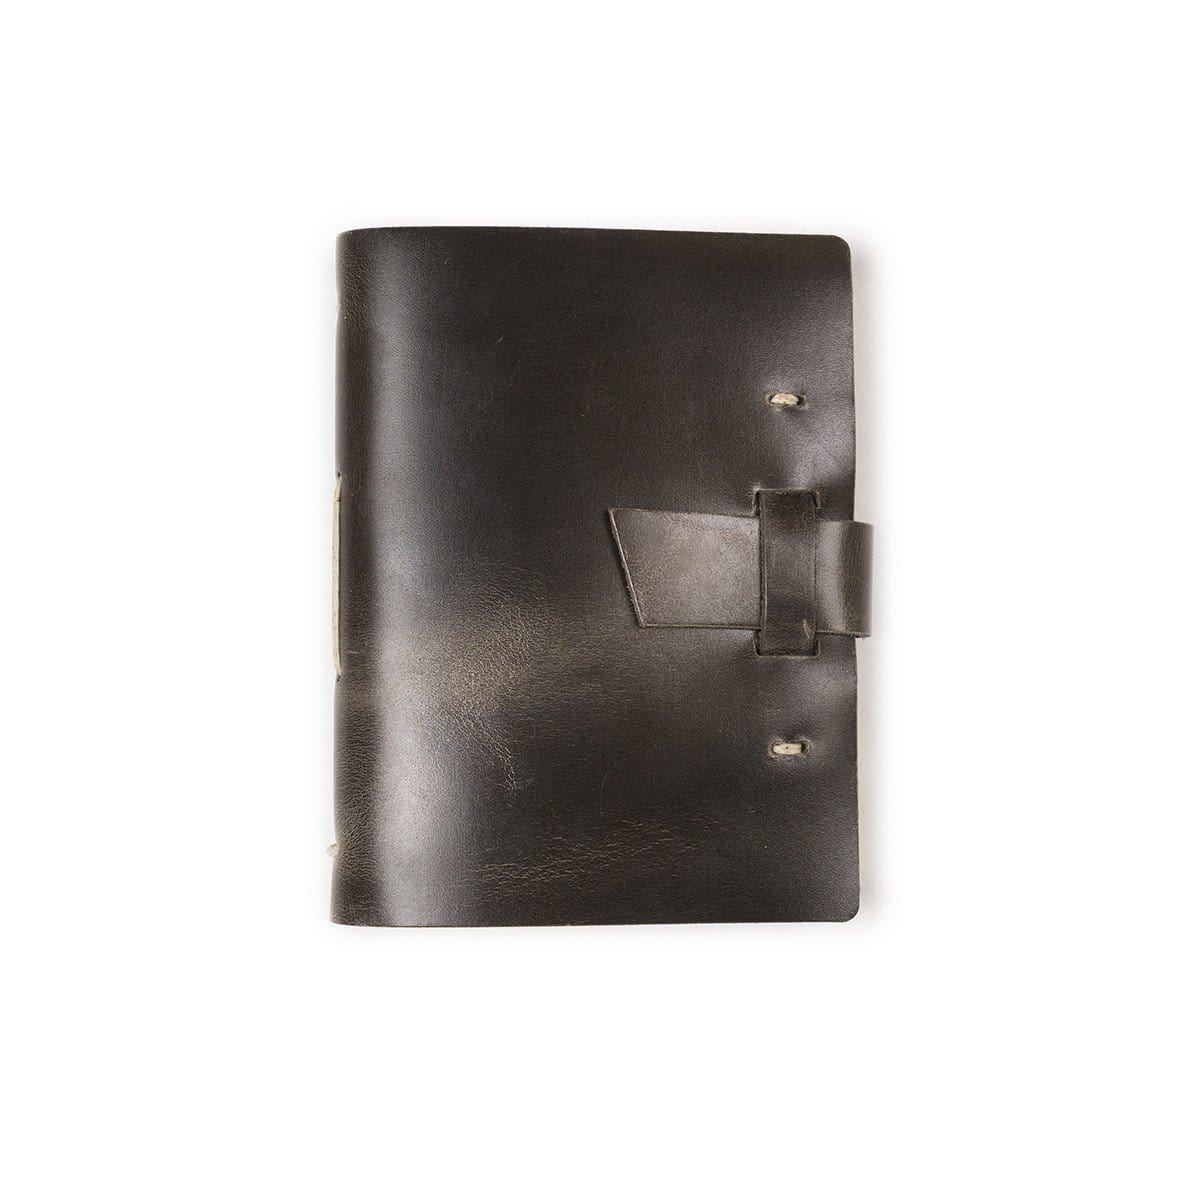 Parley Leather Journal - Charcoal